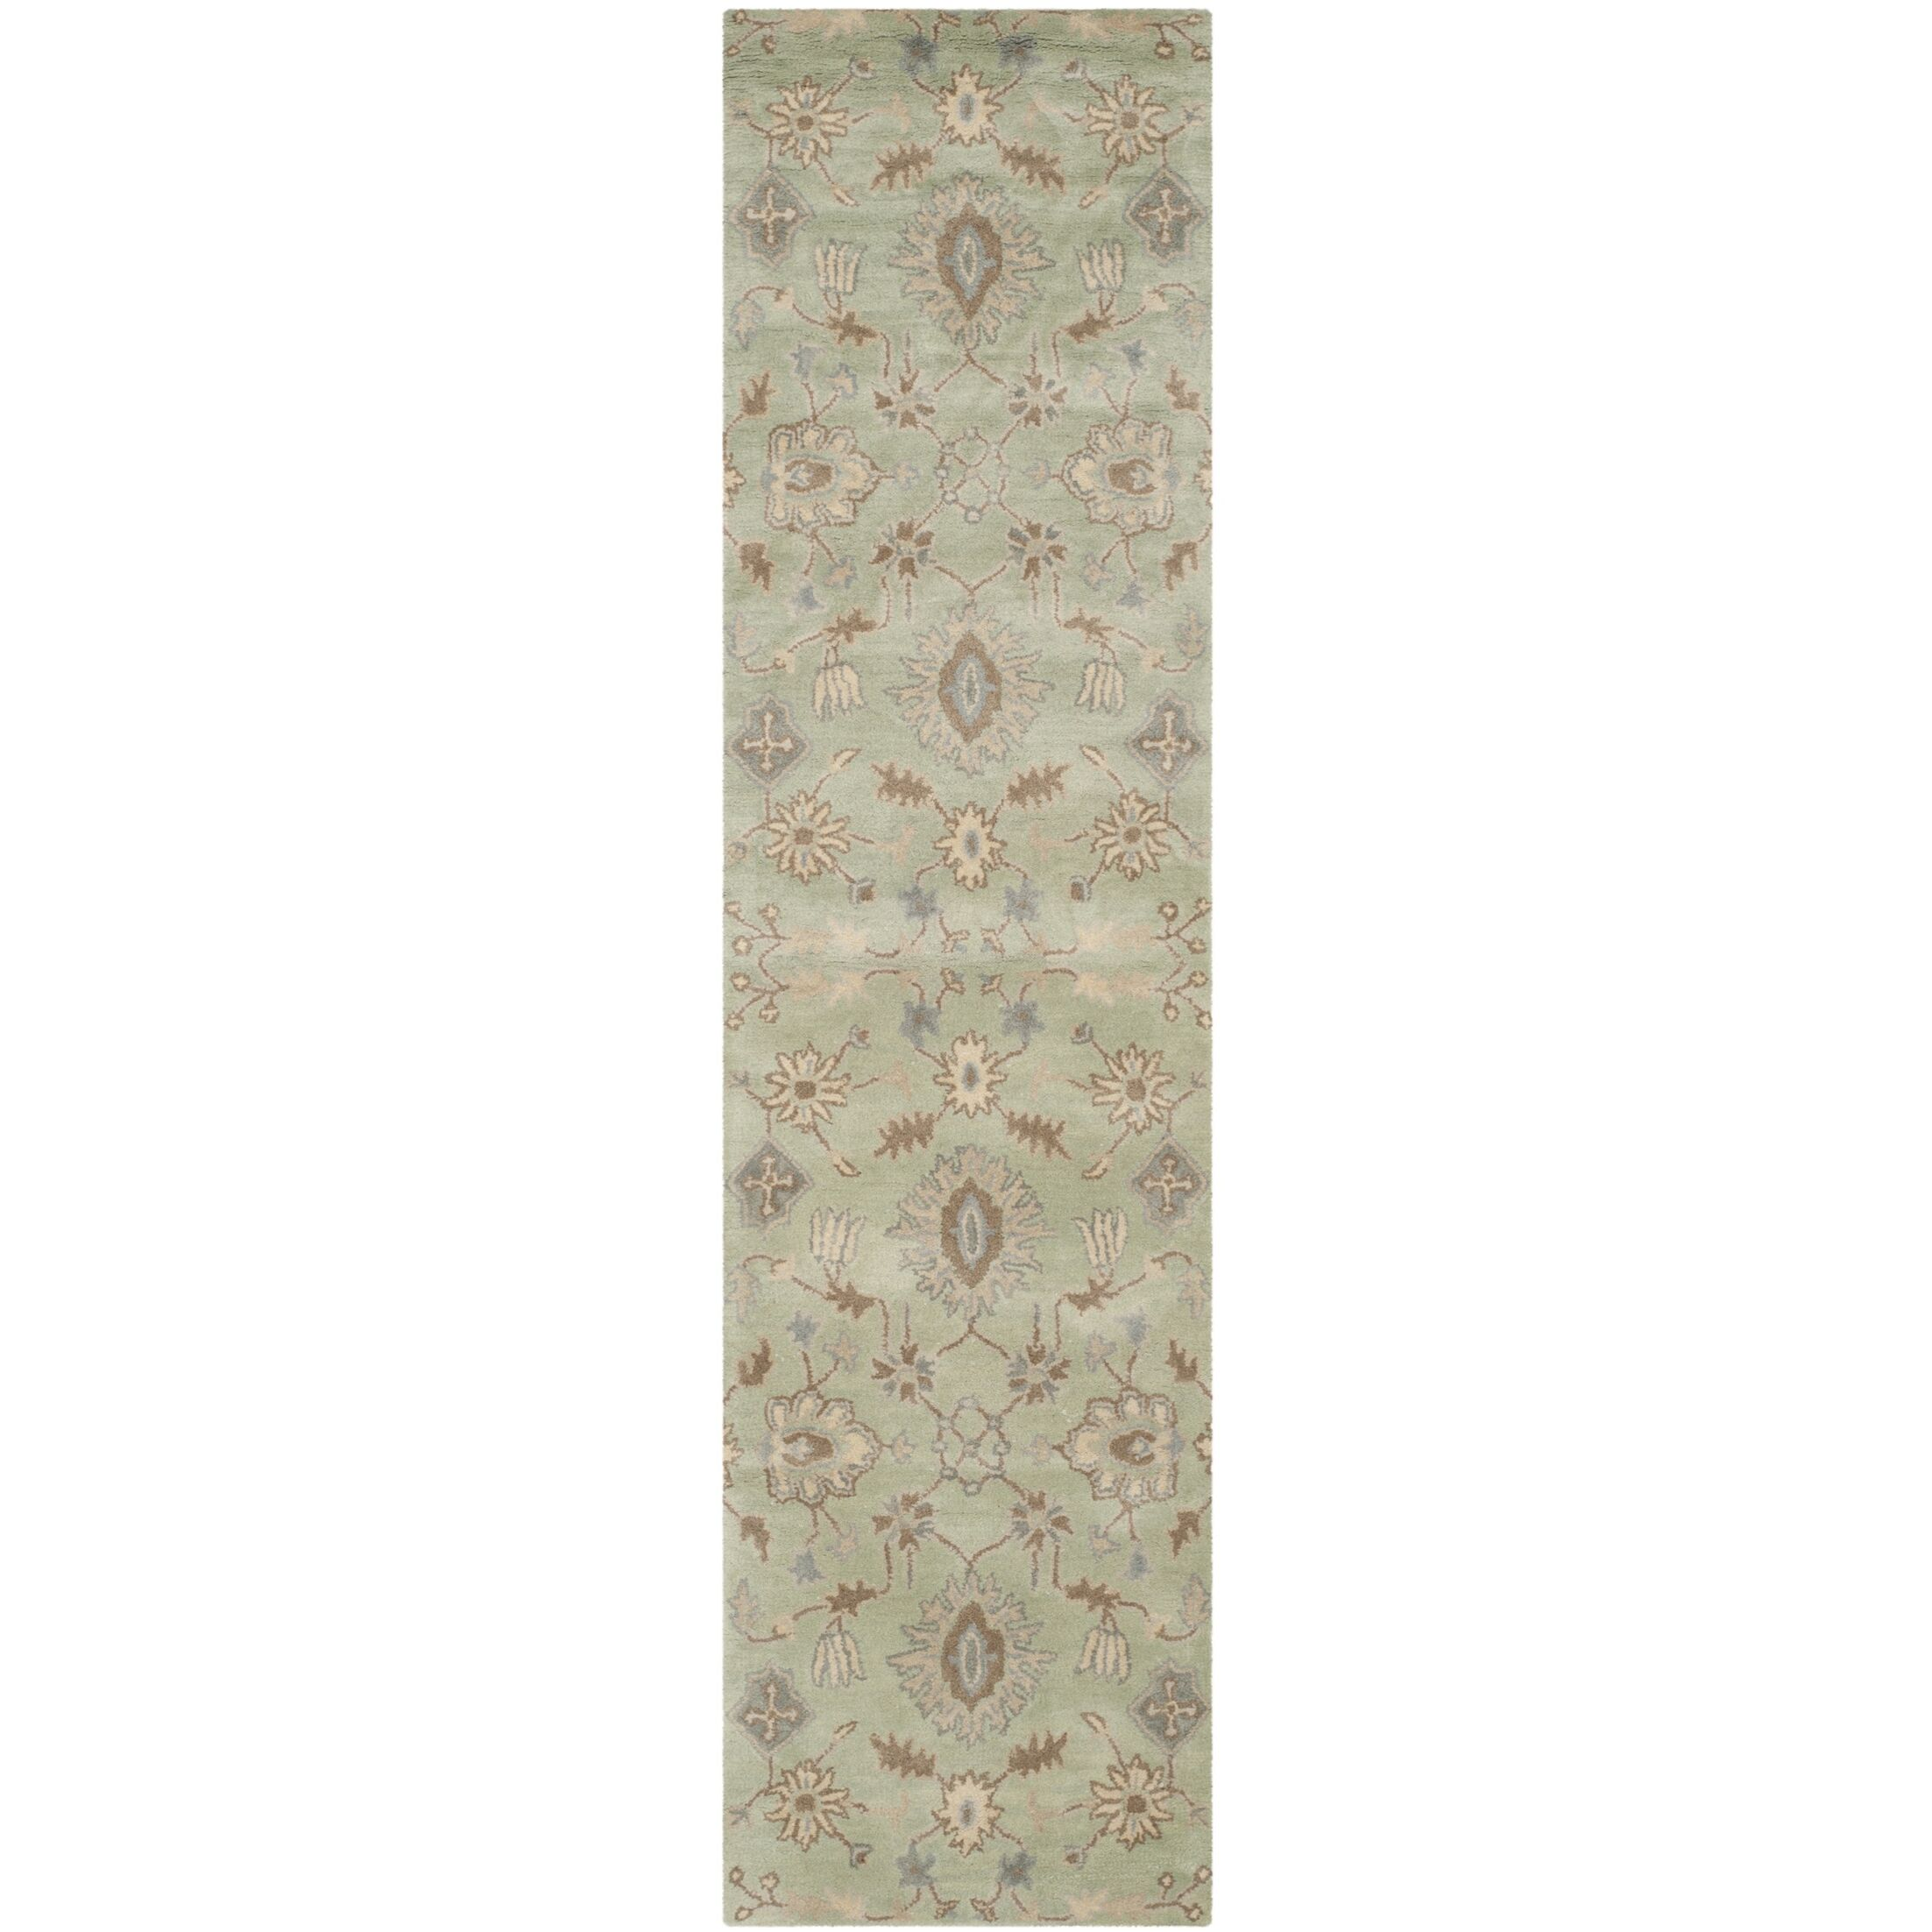 Colesberry Light Green Area Rug Rug Size: Runner 2'3